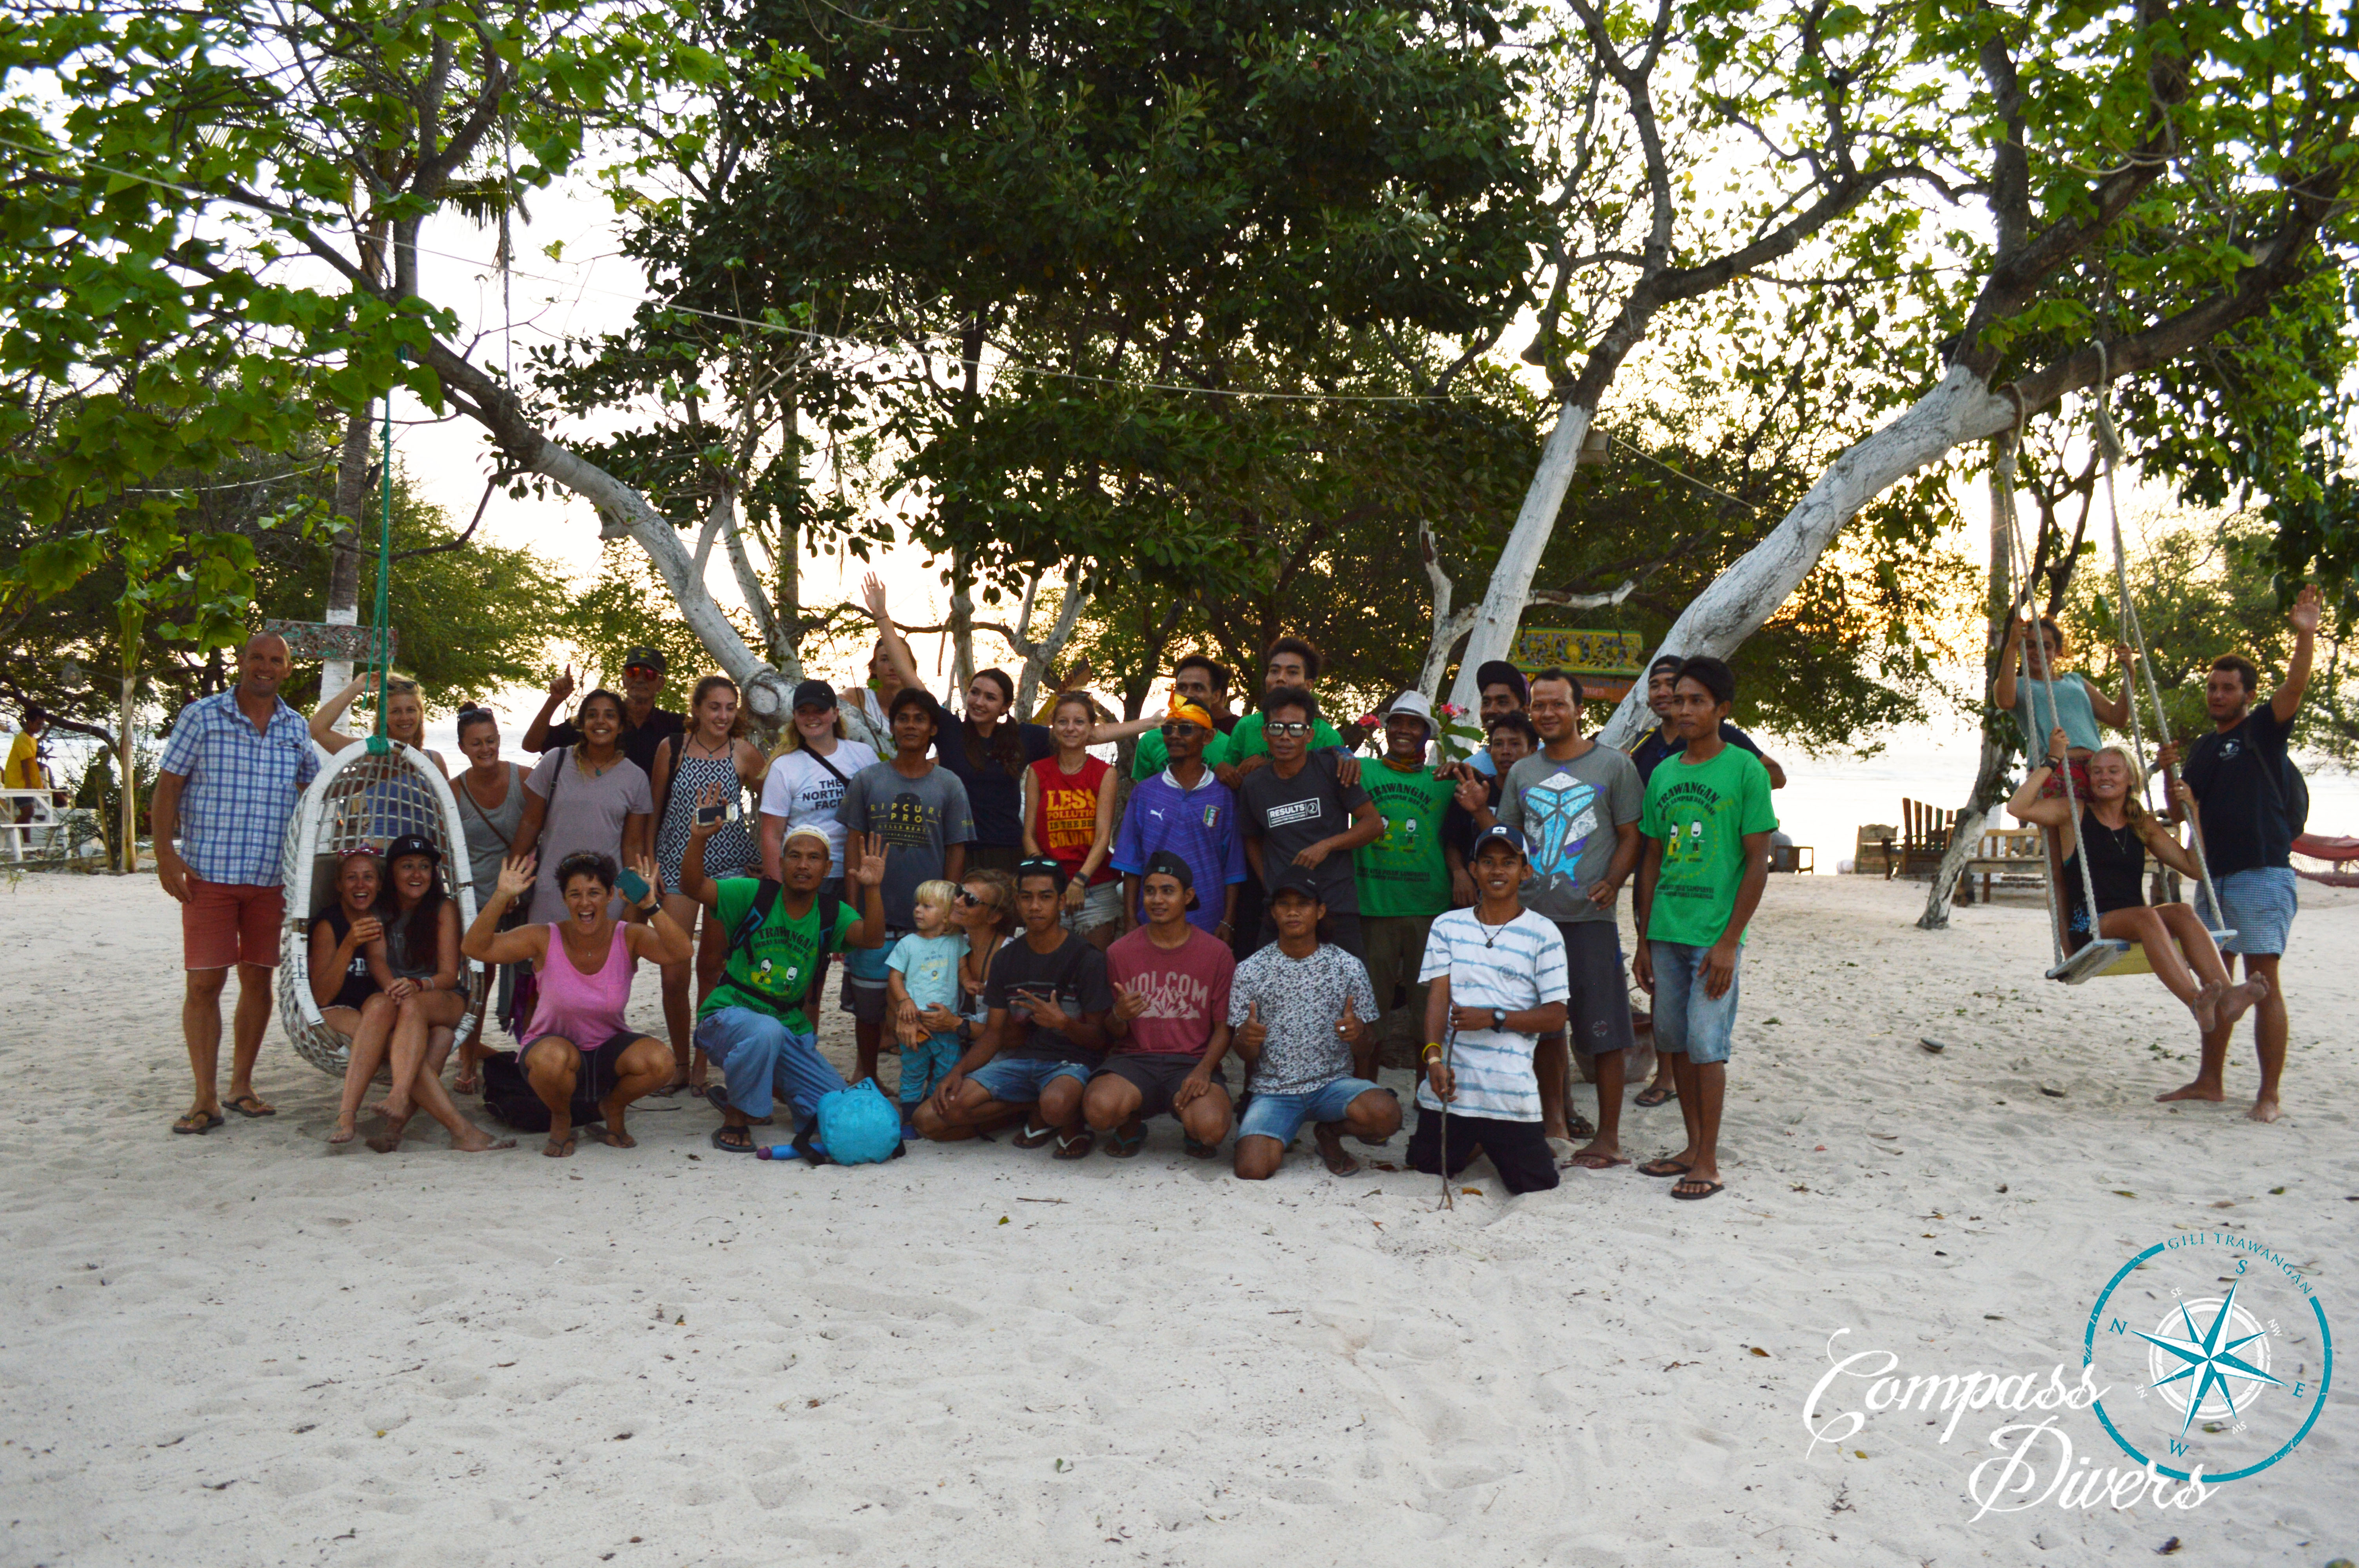 A group of people on the beach celebrating their beach clean up.